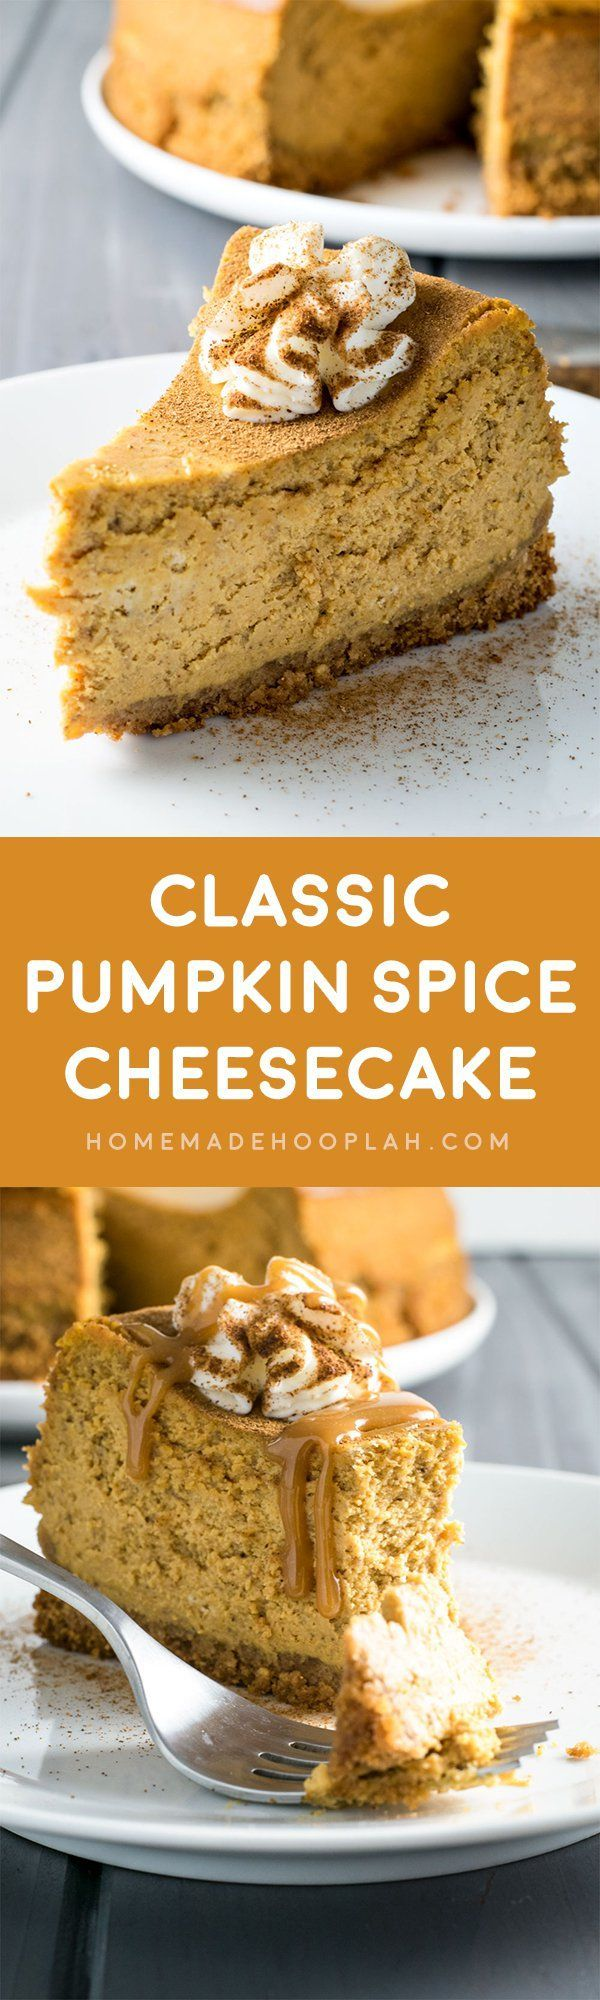 Classic Pumpkin Spice Cheesecake! Classic cheesecake infused with creamy pumpkin, plus a double dose of pumpkin spice - it's baked both in the cake and the crust! | HomemadeHooplah.com